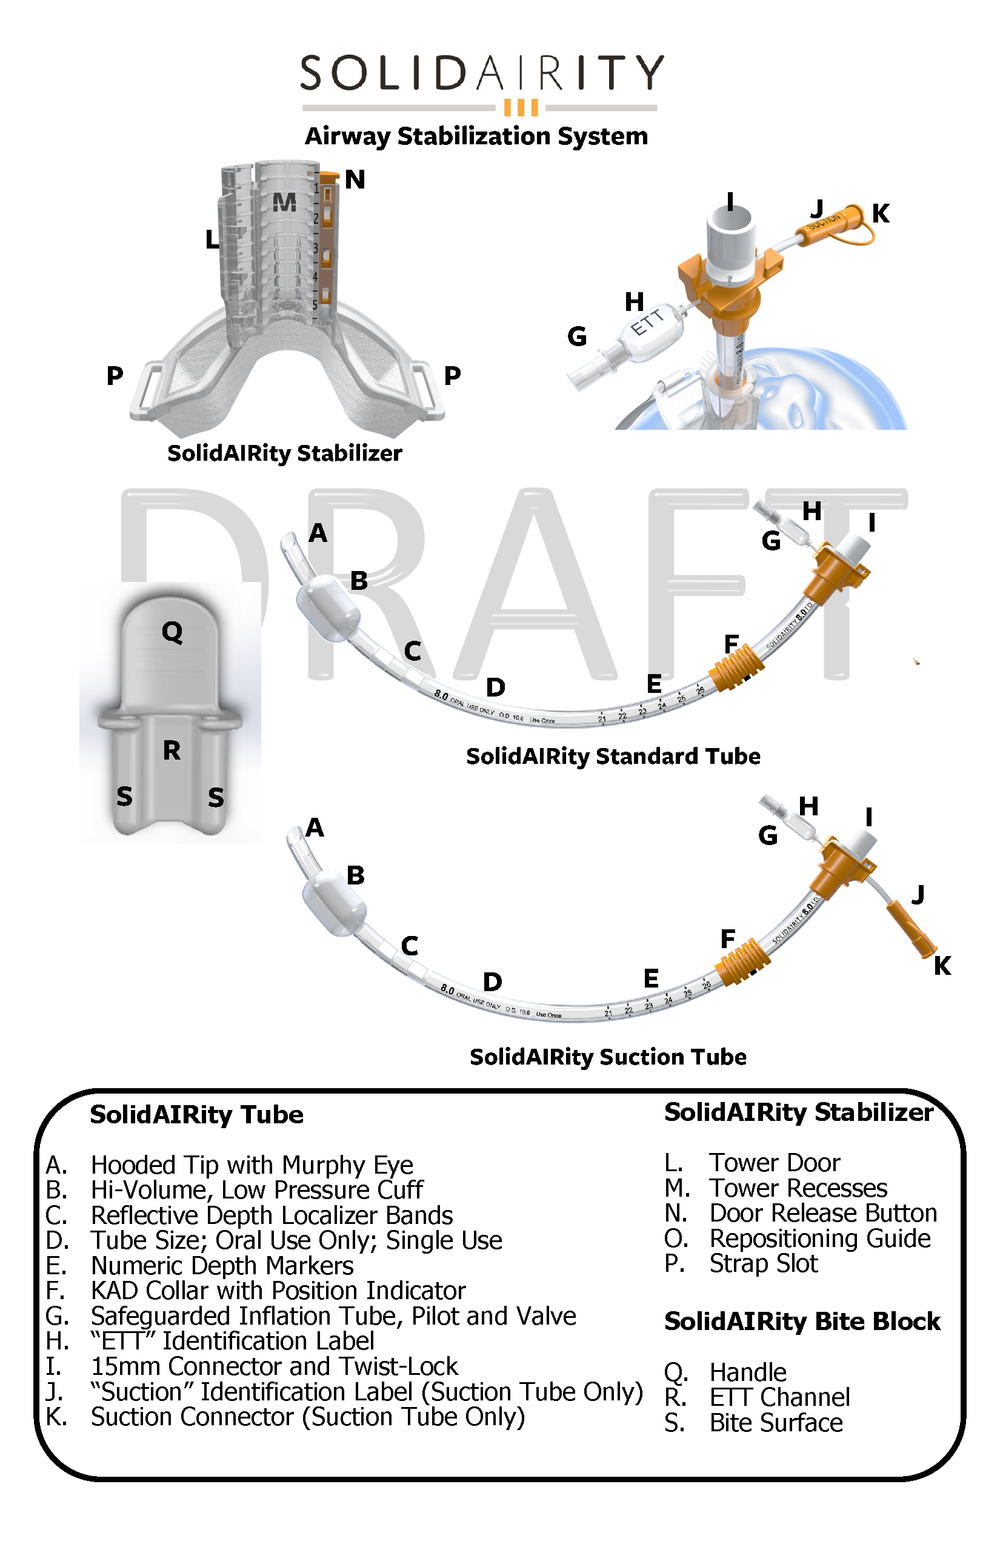 3.4040 Rev X1_Instructions for Use_SolidAIRity Airway Stabilization System_FINAL DRAFT 10.13.2017_Page_04.png